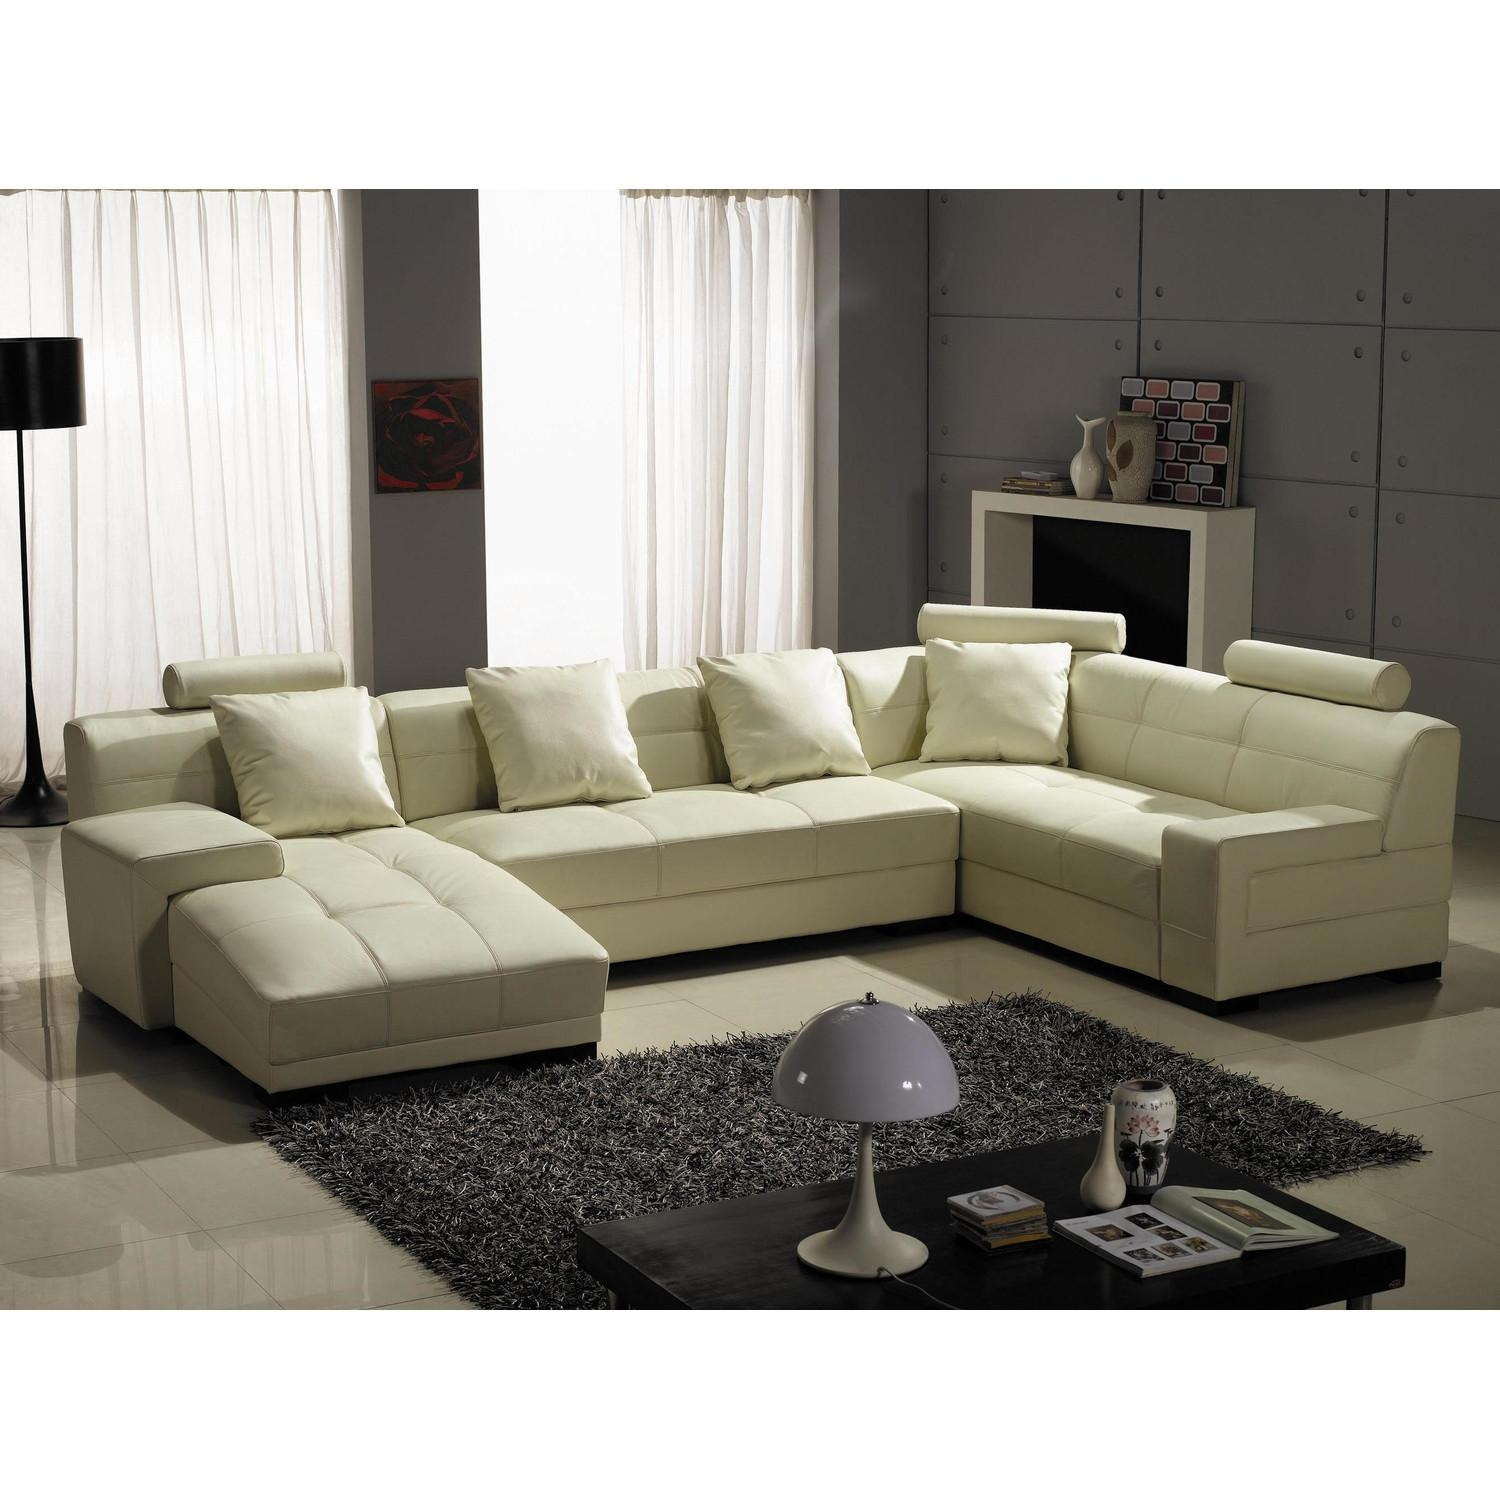 Interior: Admirable Oversized Sectional Sofas With Oversized With Regard To Houston Sectional Sofa (Image 5 of 20)